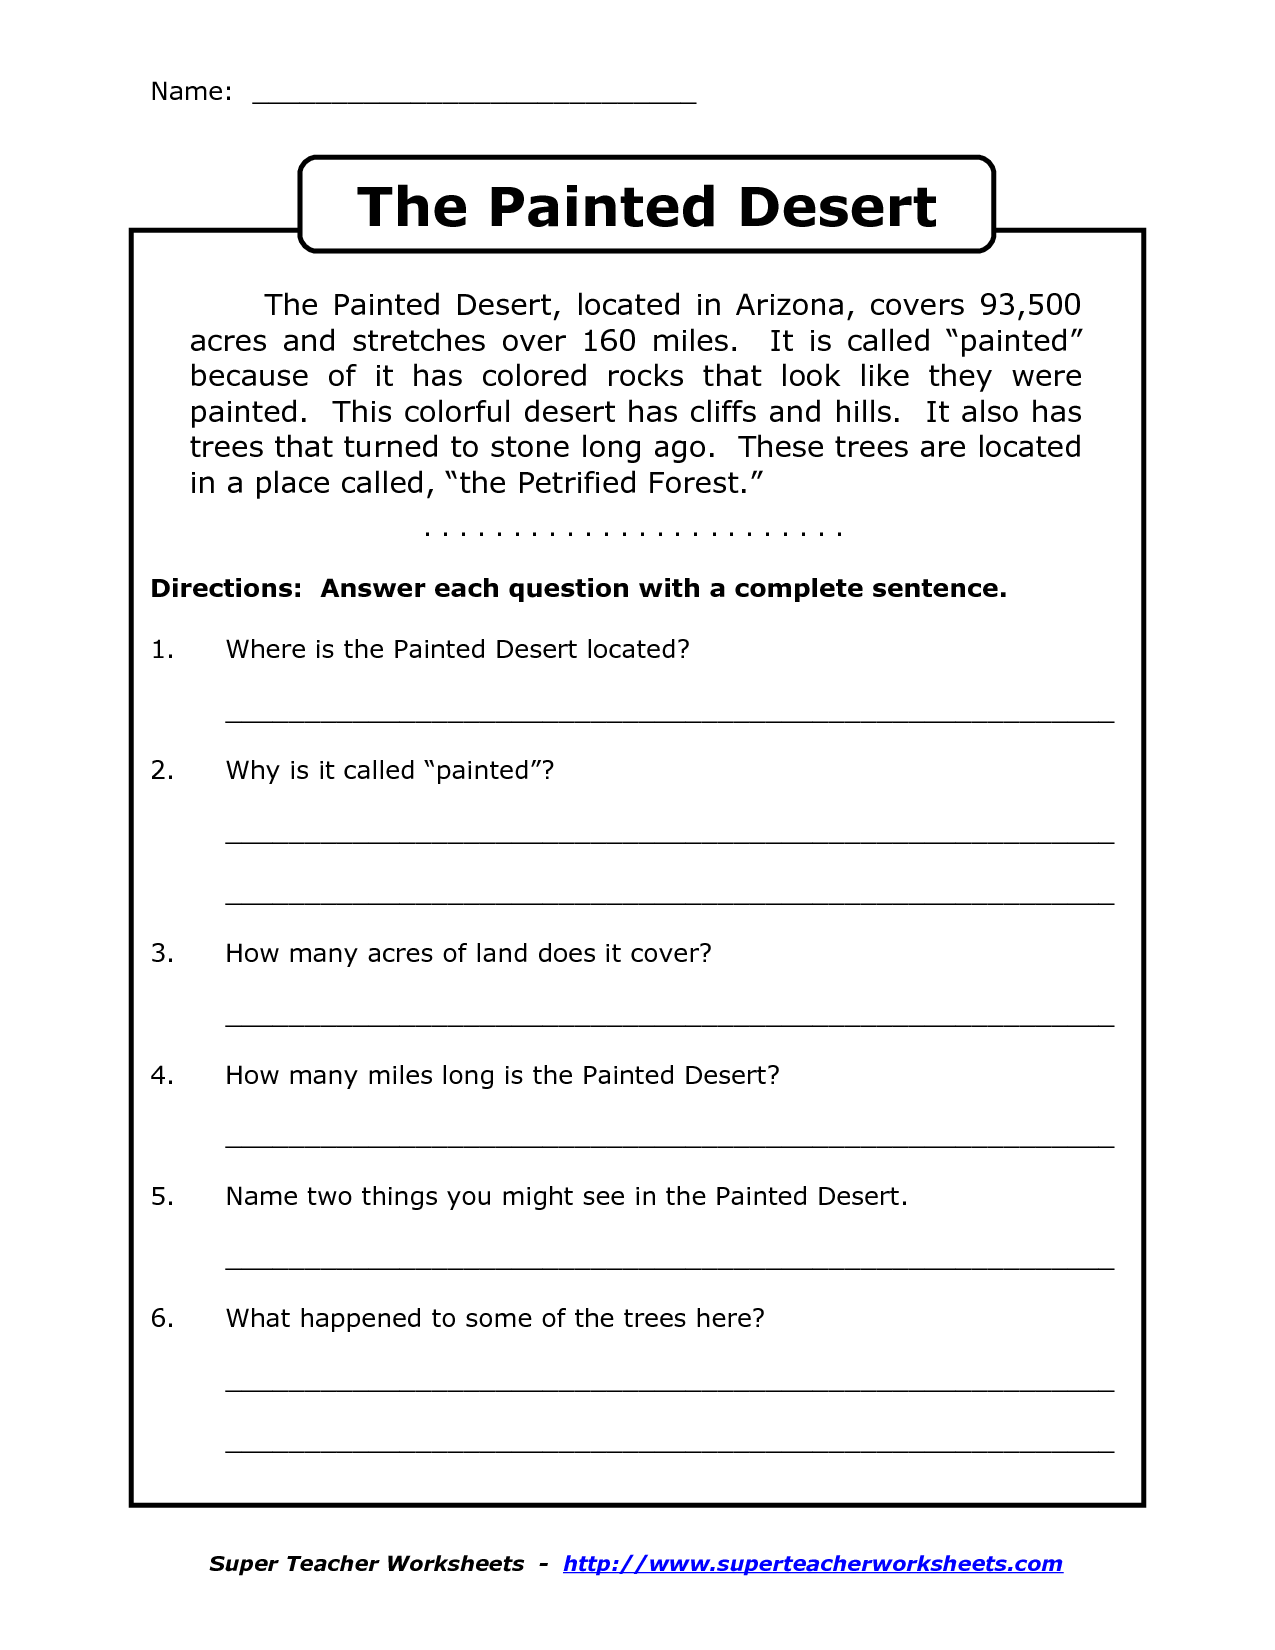 Worksheets 4th Grade Reading Worksheets Free reading worksheets for 4th grade comprehension 3 name the painted desert